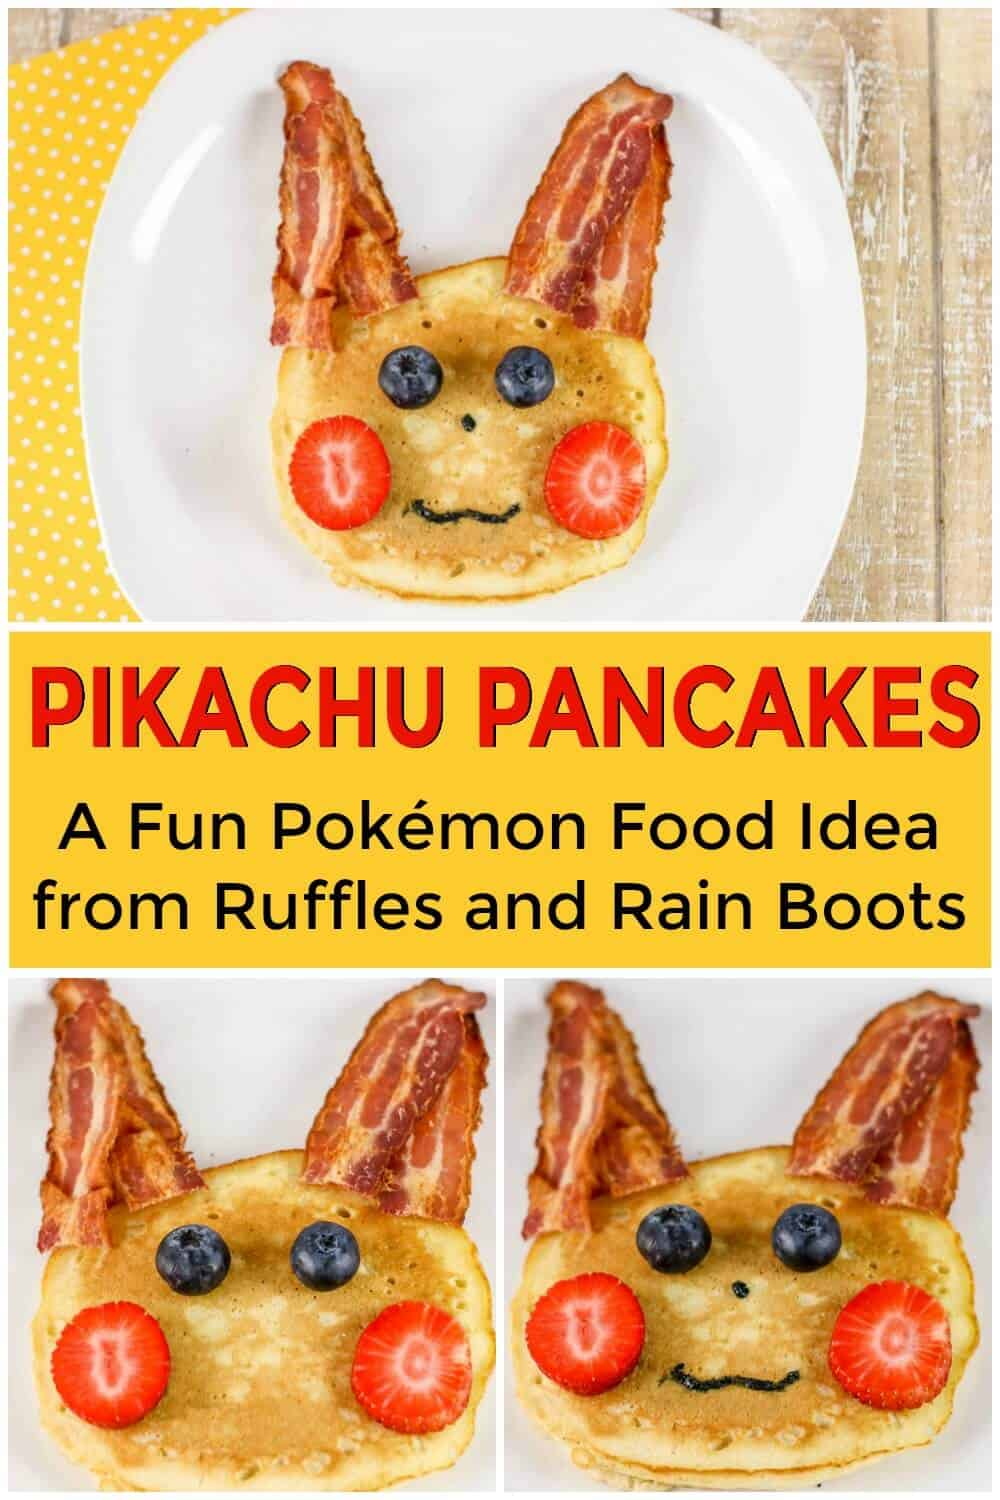 photo collage of pikachu pancakes with text which reads pikachu pancakes a fun pokemon food idea from Ruffles and Rain Boots